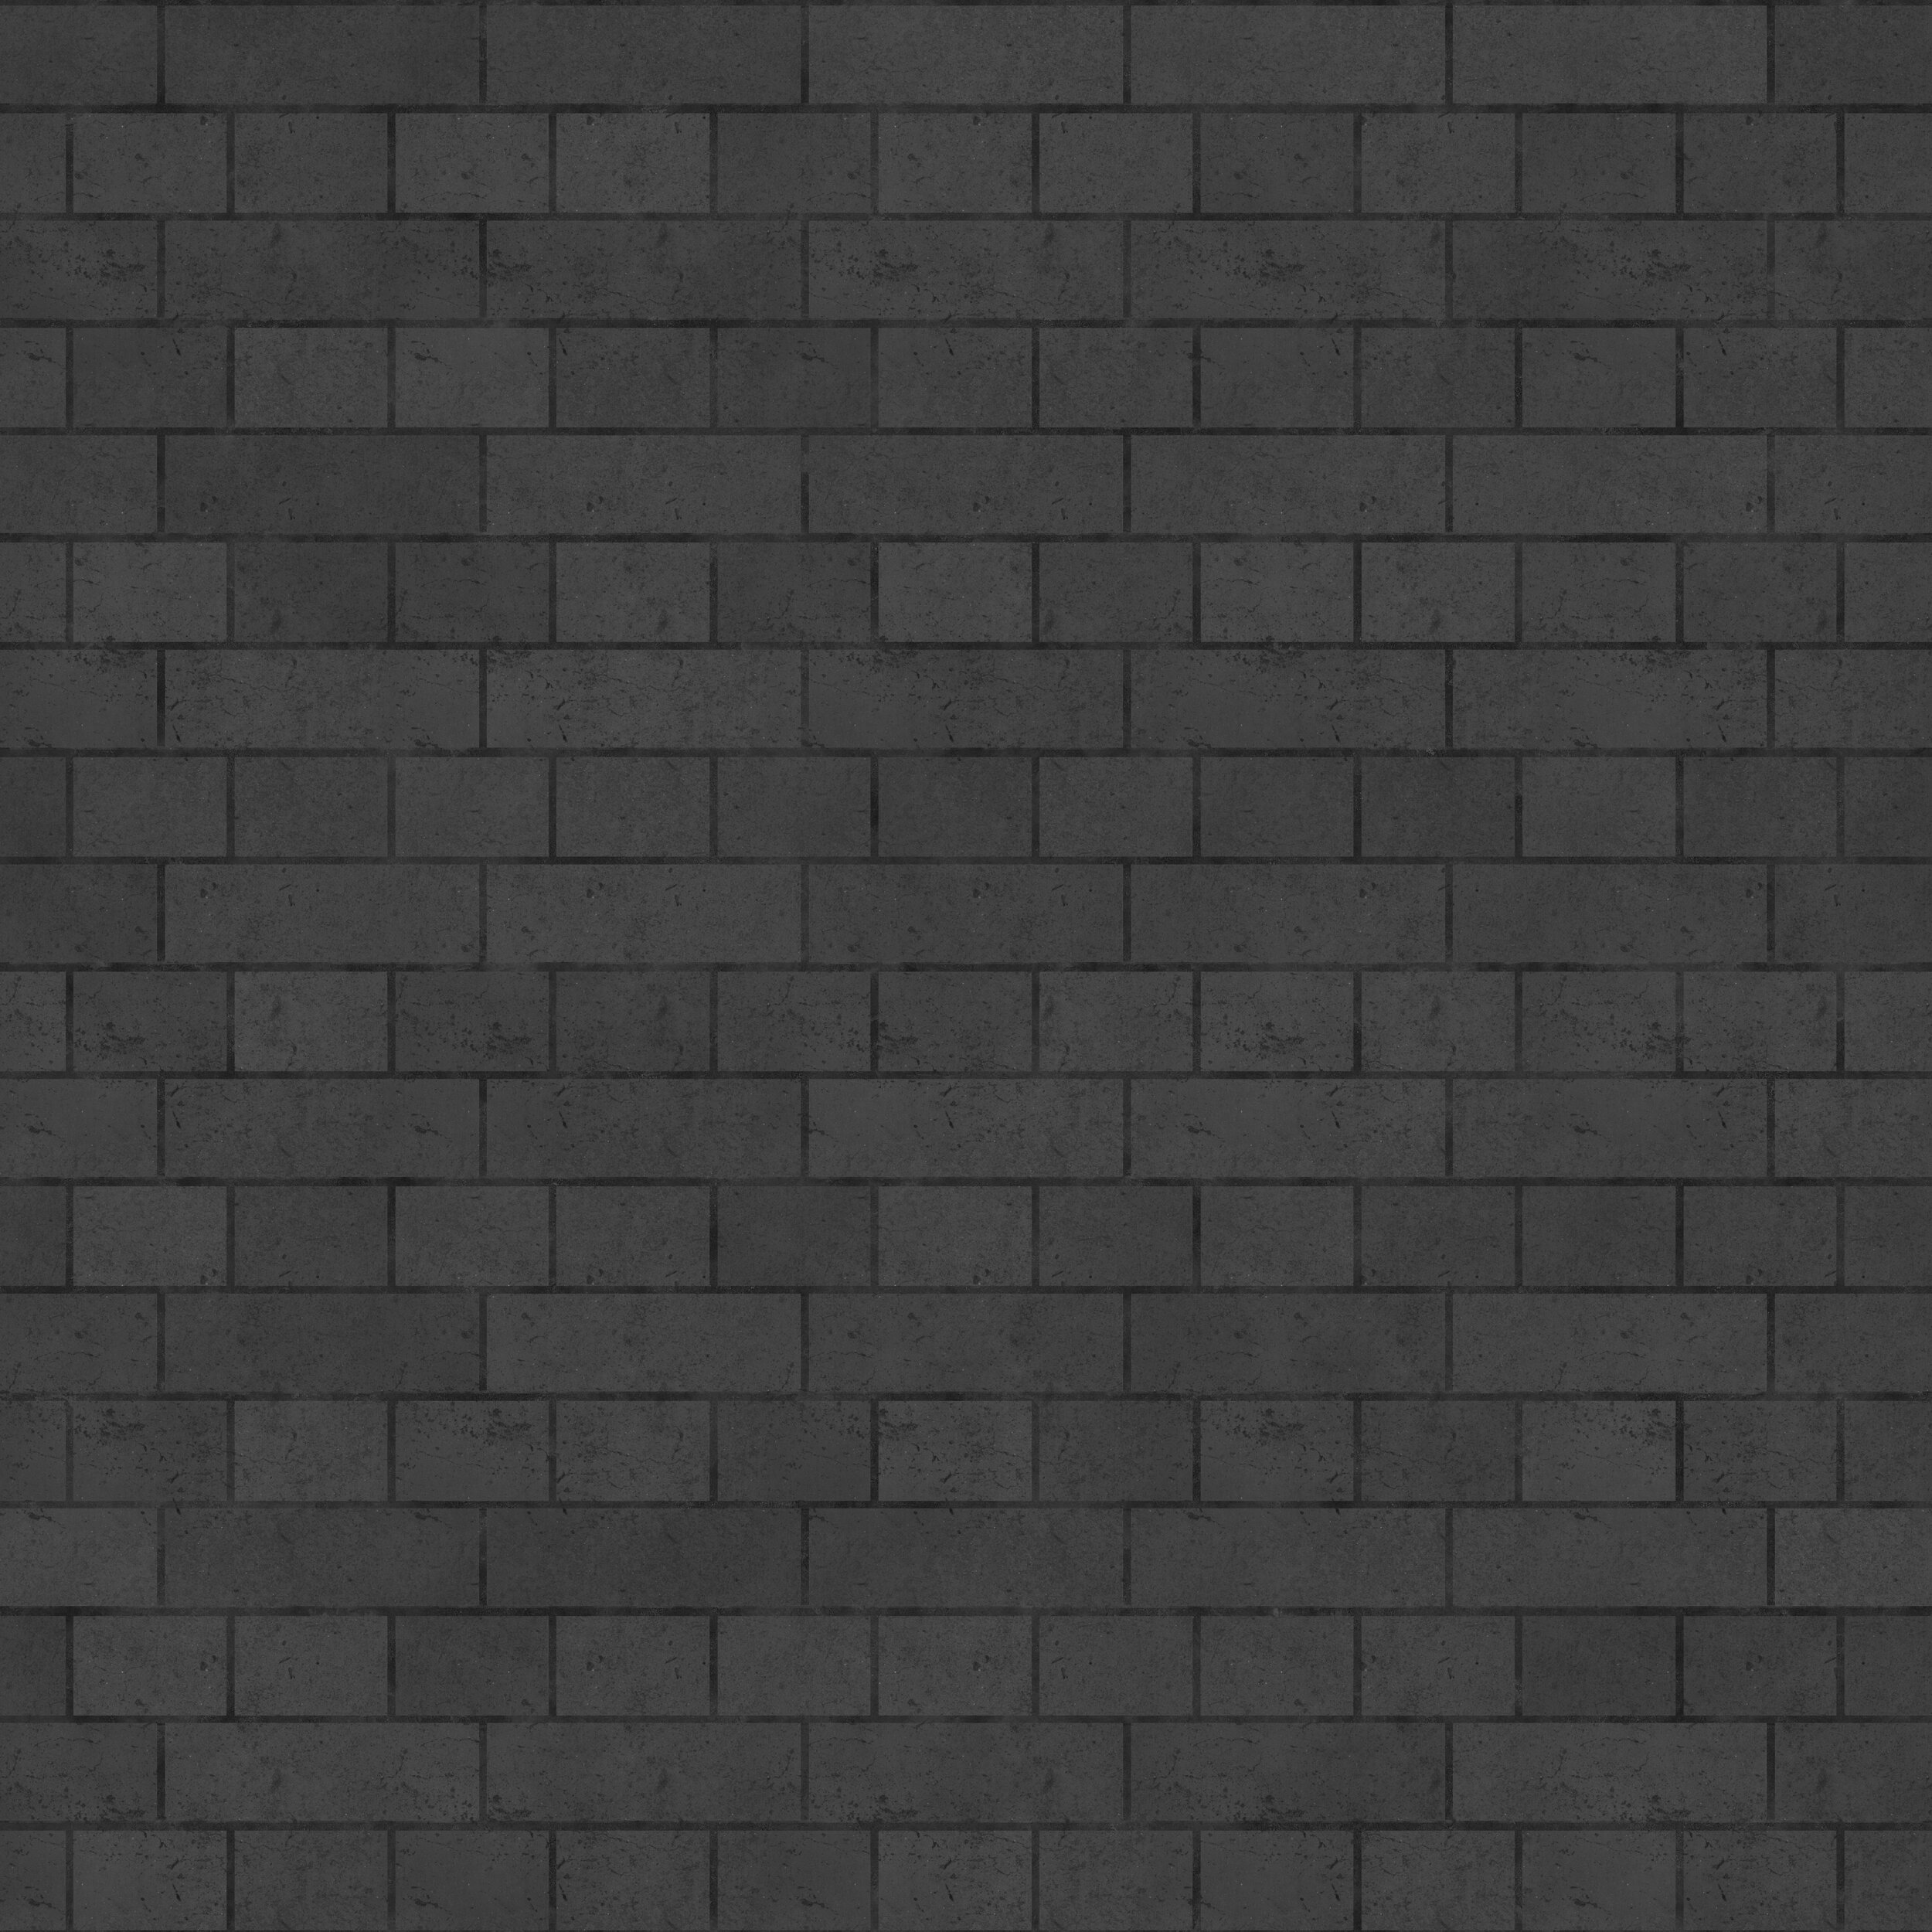 Bricks_AI_01C_Buff_GLOSS.jpg